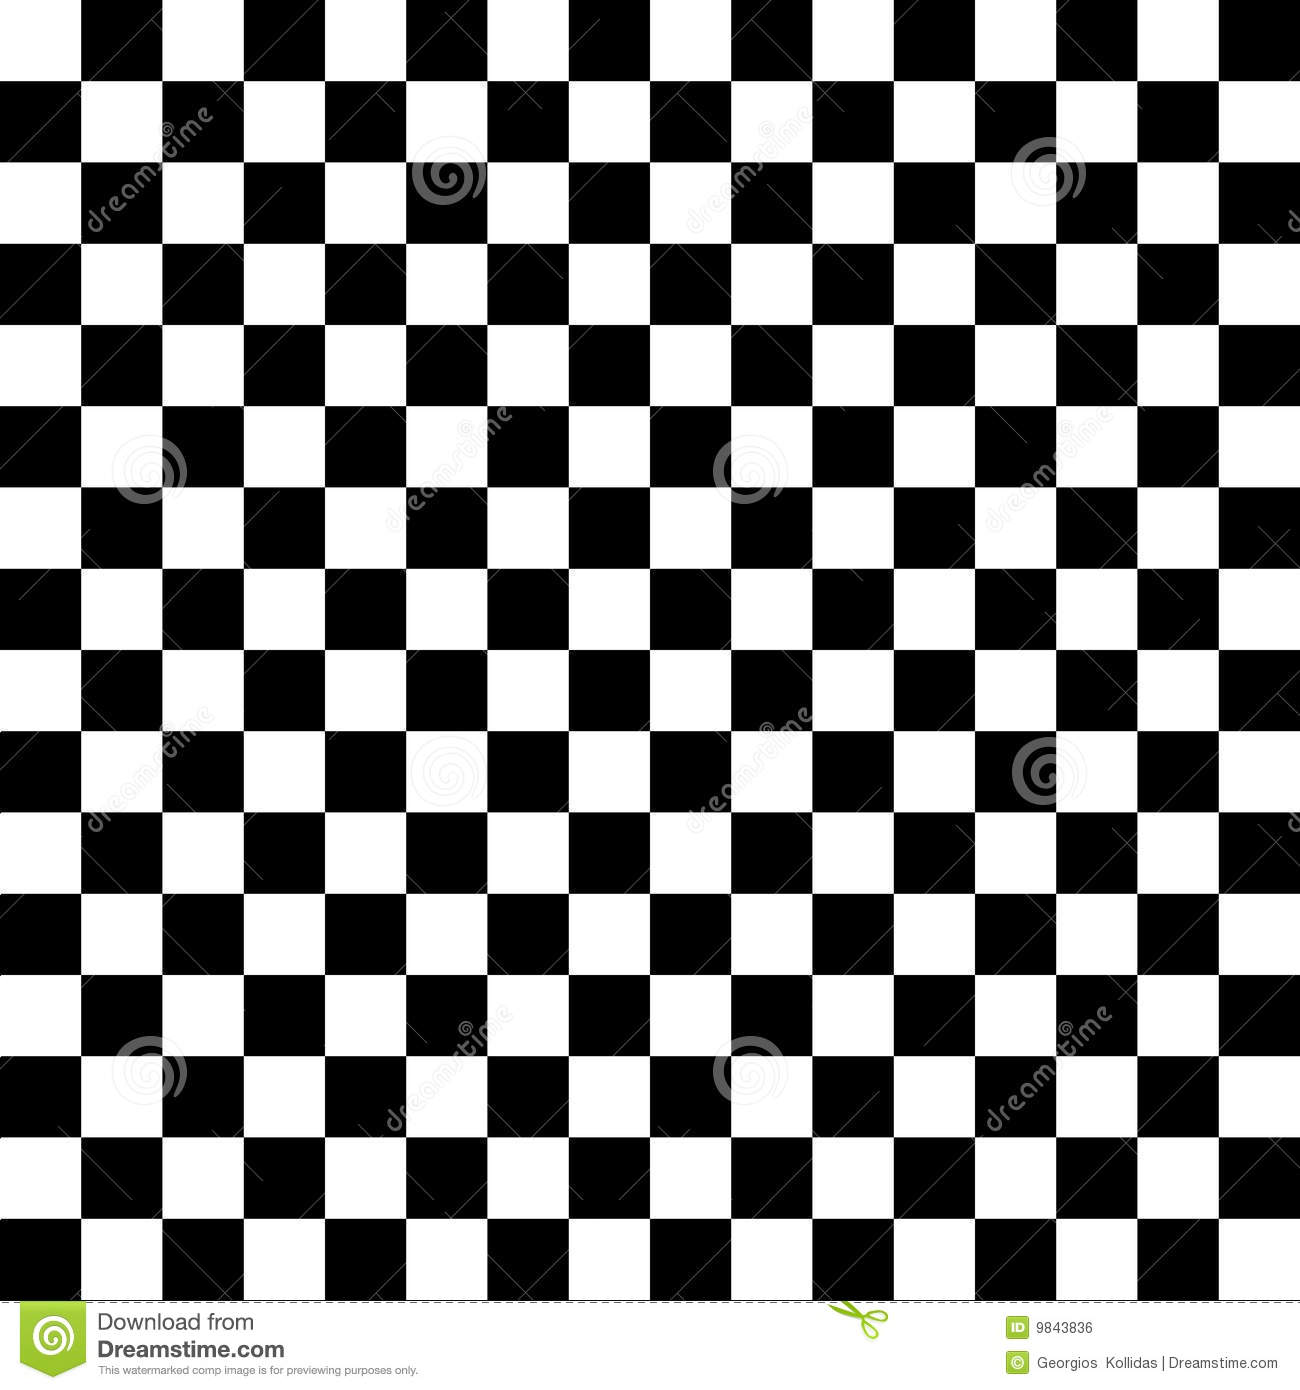 Black And White Checkerboard Tiles Stock Images - Image: 11070794